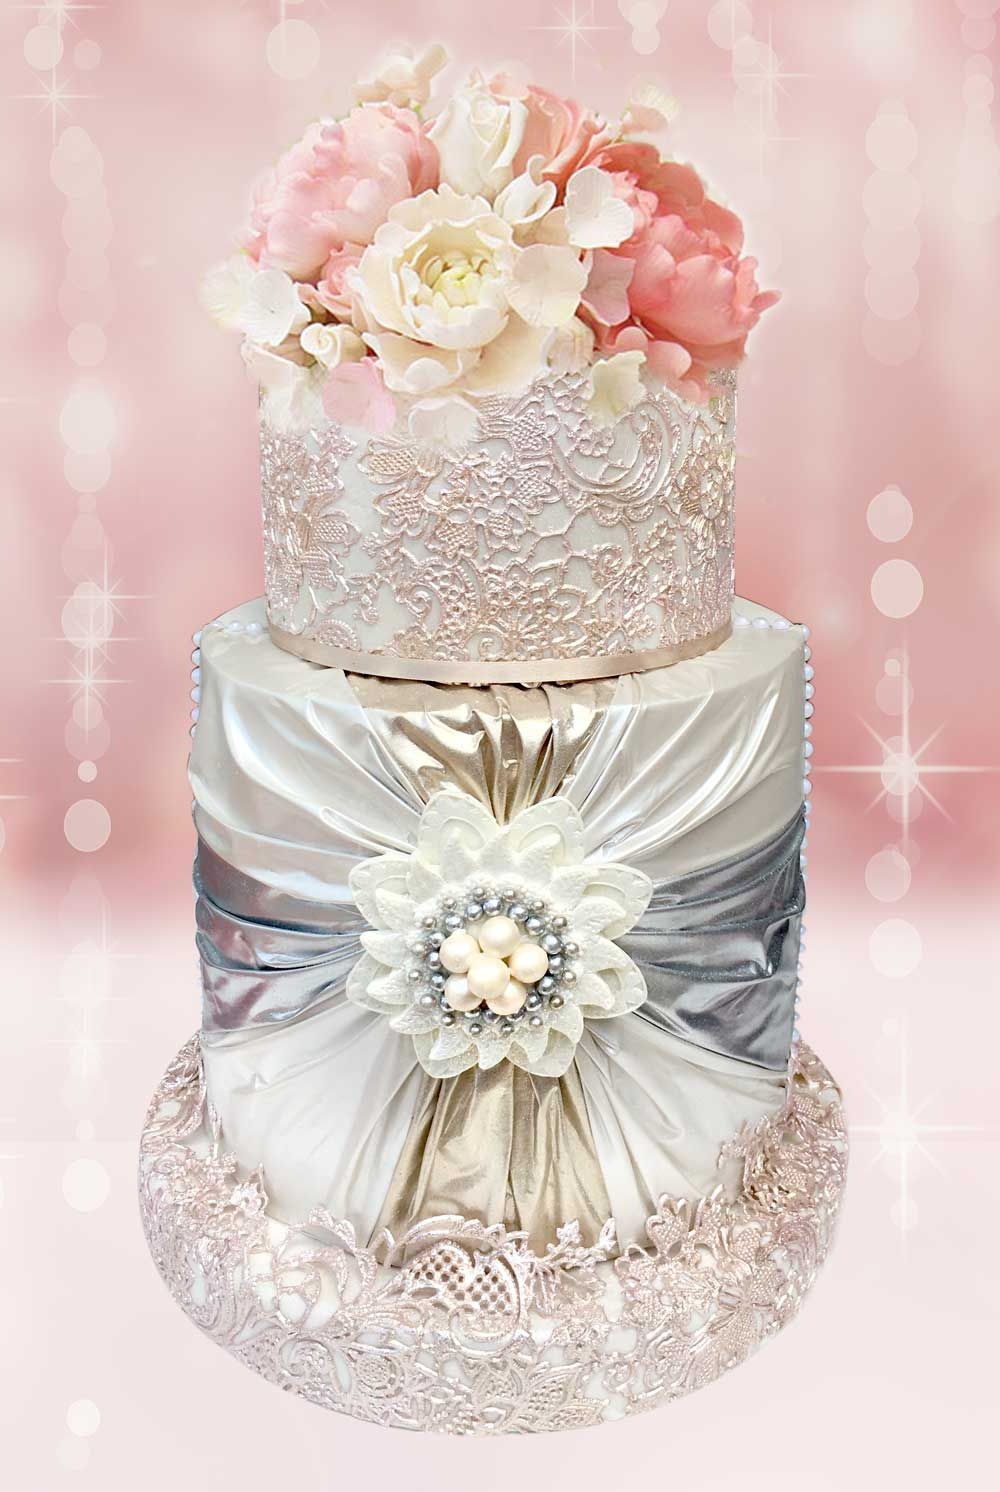 Edible Fabric for besutiful Cake decor by Crystal Candy